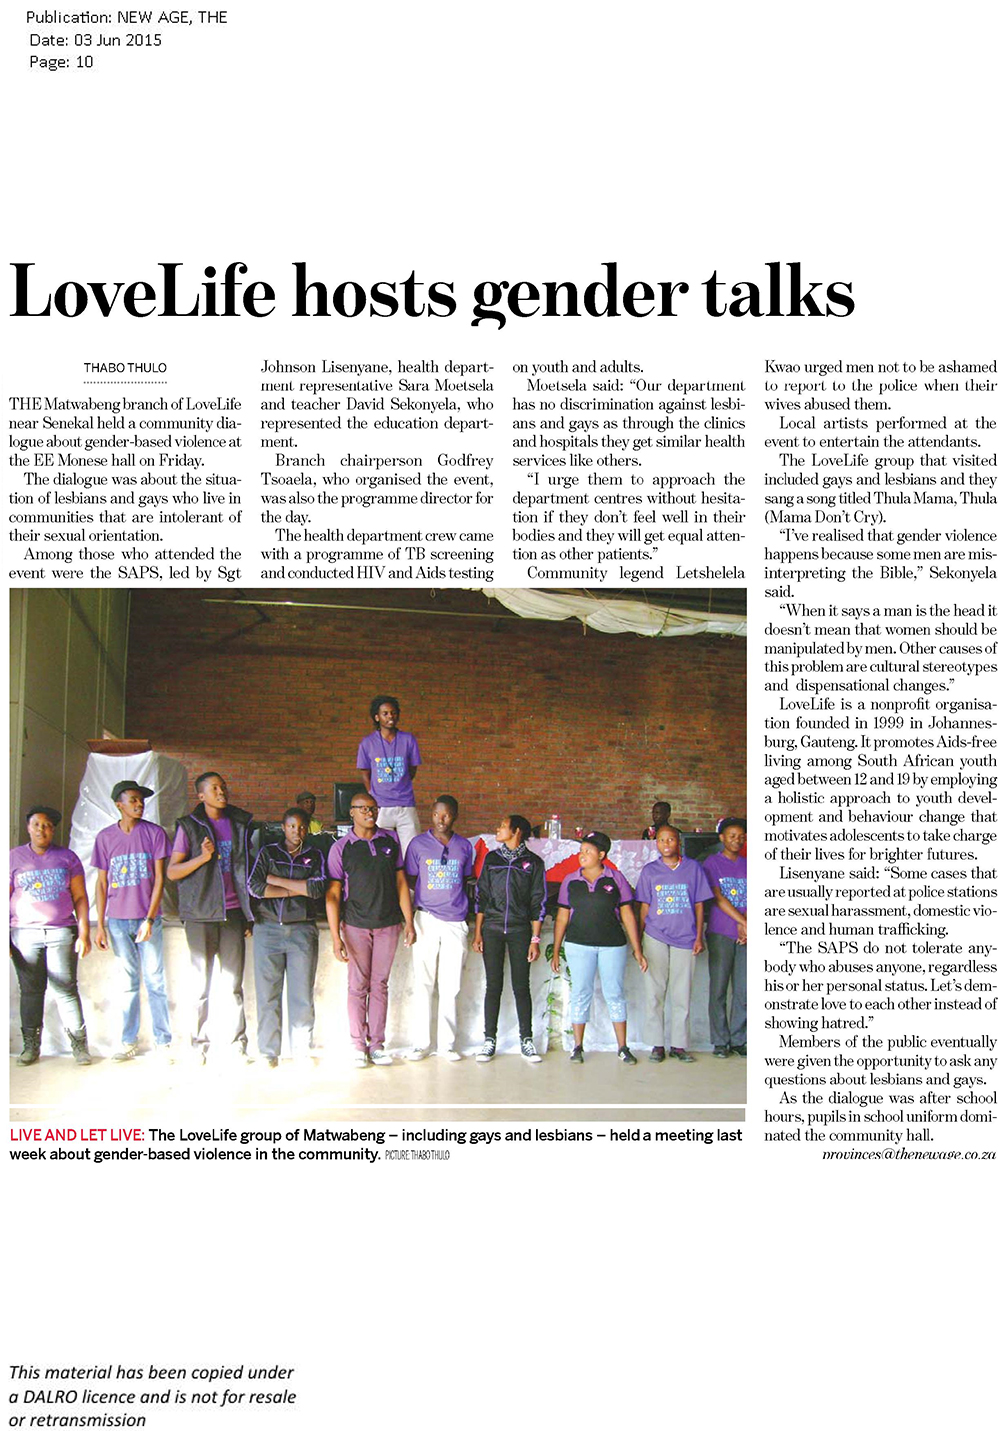 THE-NEW-AGE---GENDER-TALKS